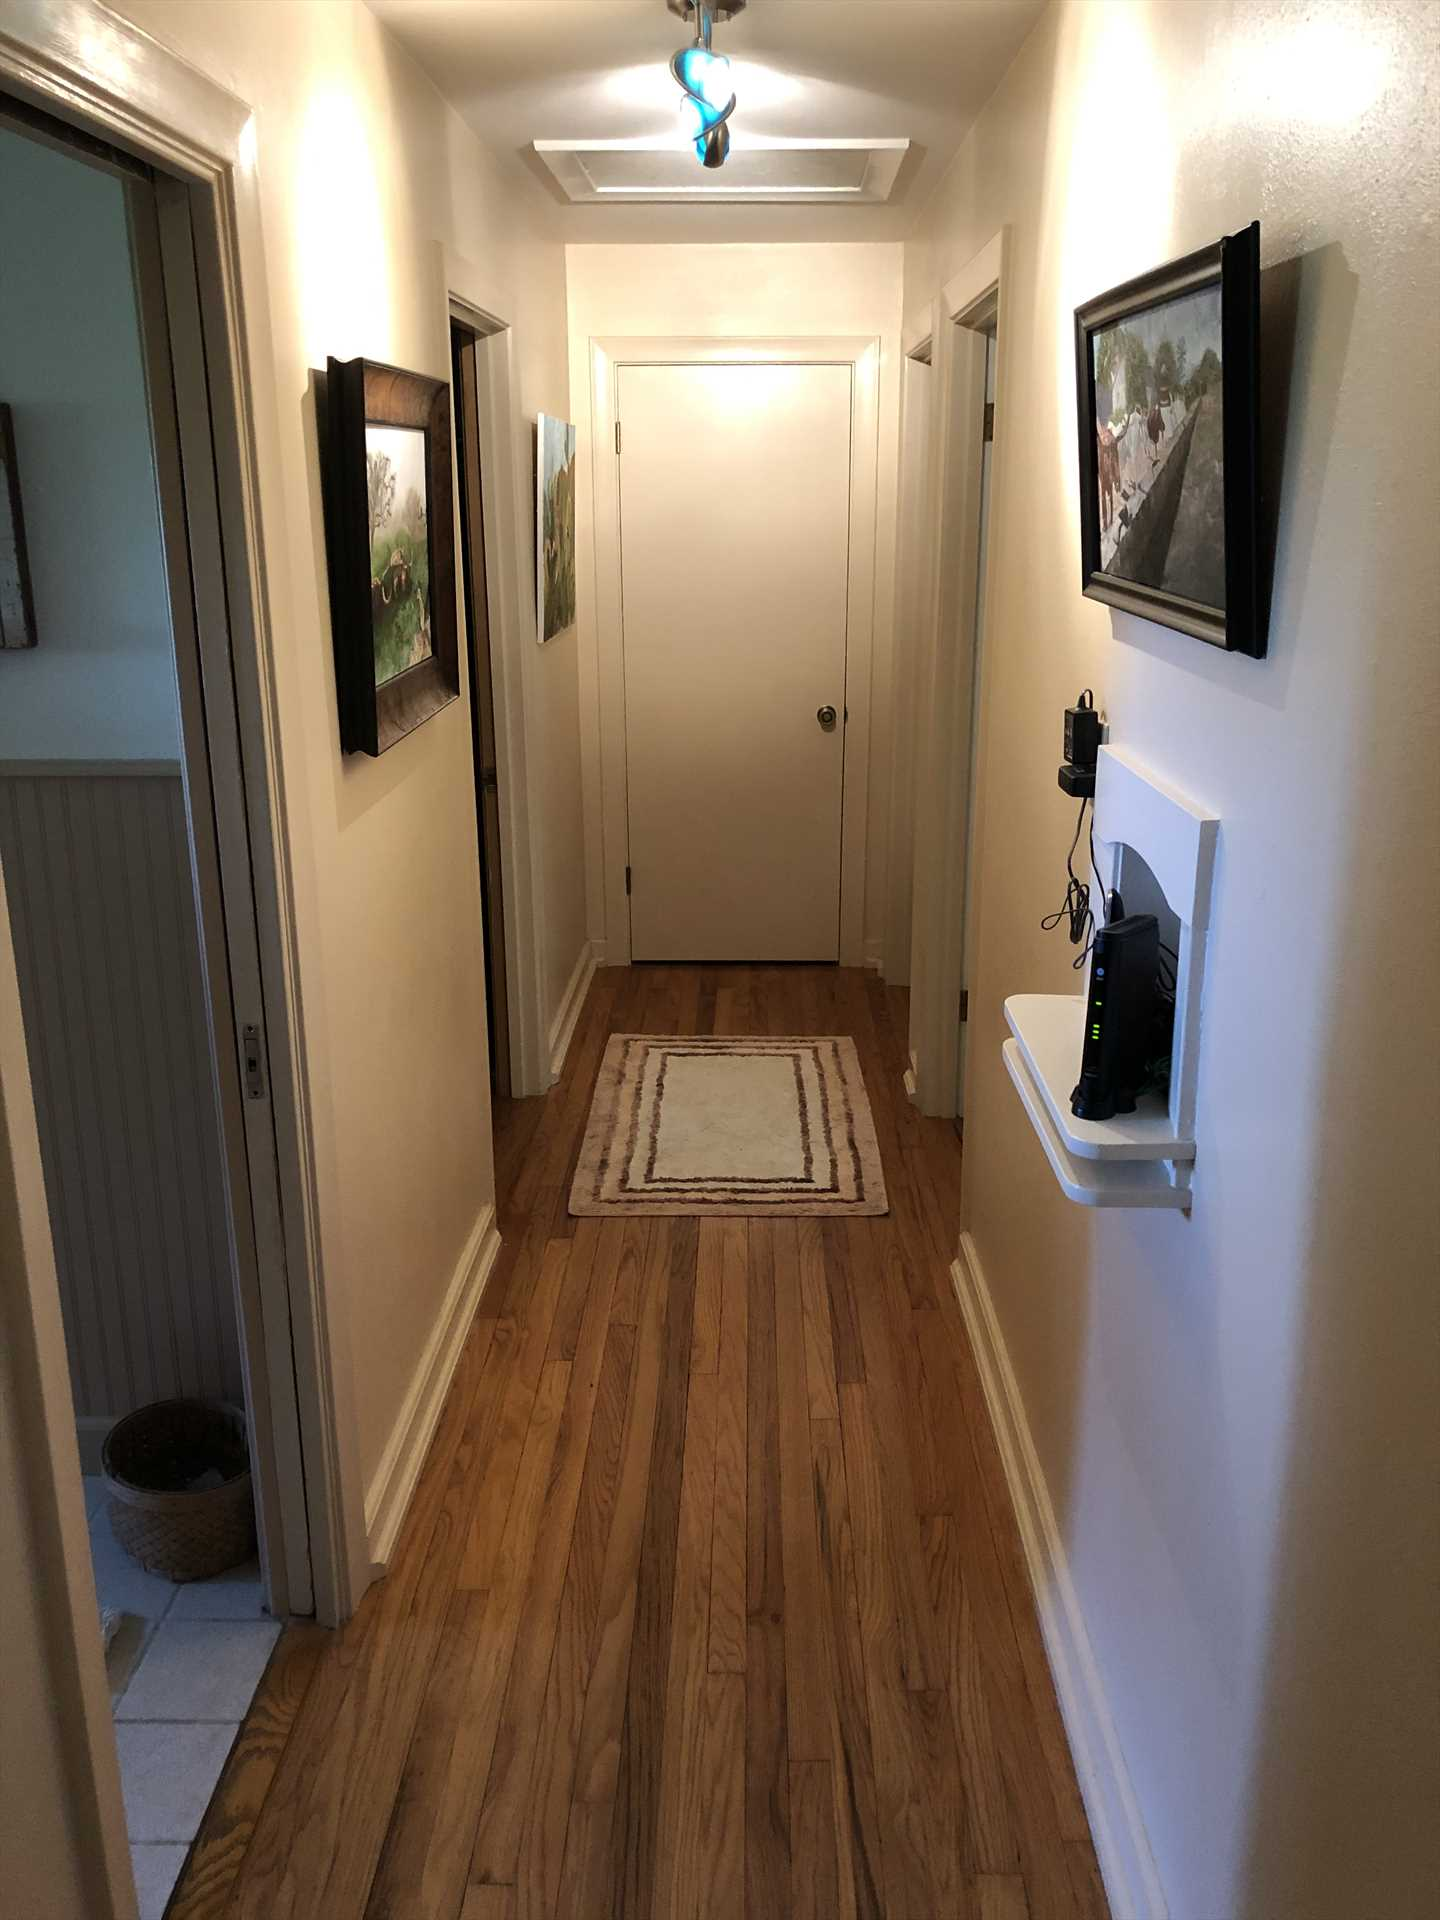 Some may just see a hallway, but we see rich woodwork, framed pictures, and an area rug-special extras you won't find just anywhere!